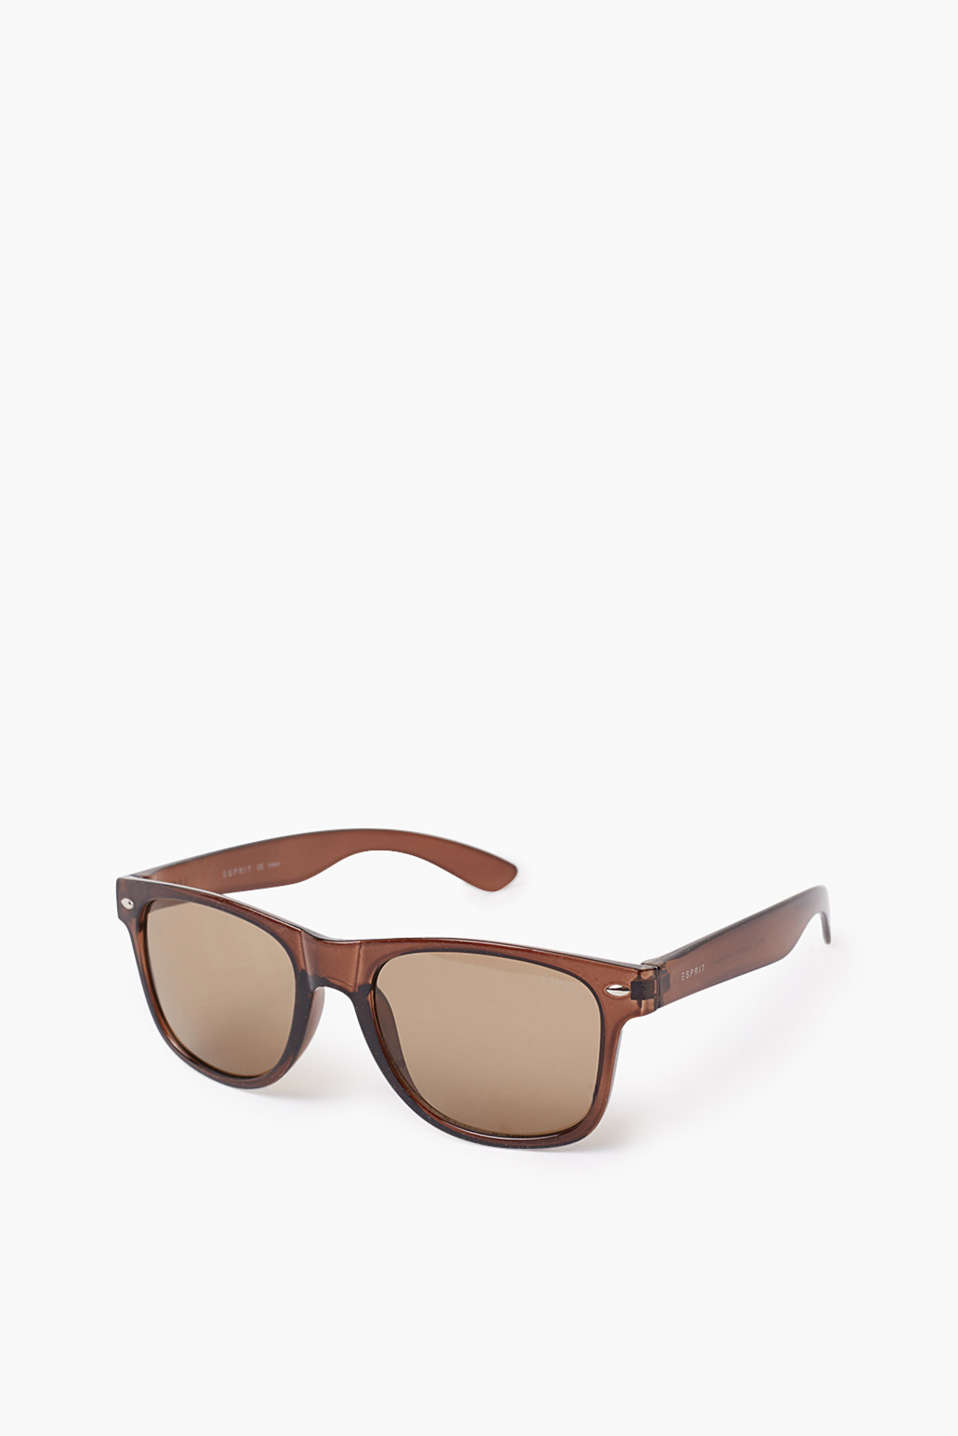 Classic sunglasses for men with rounded corners